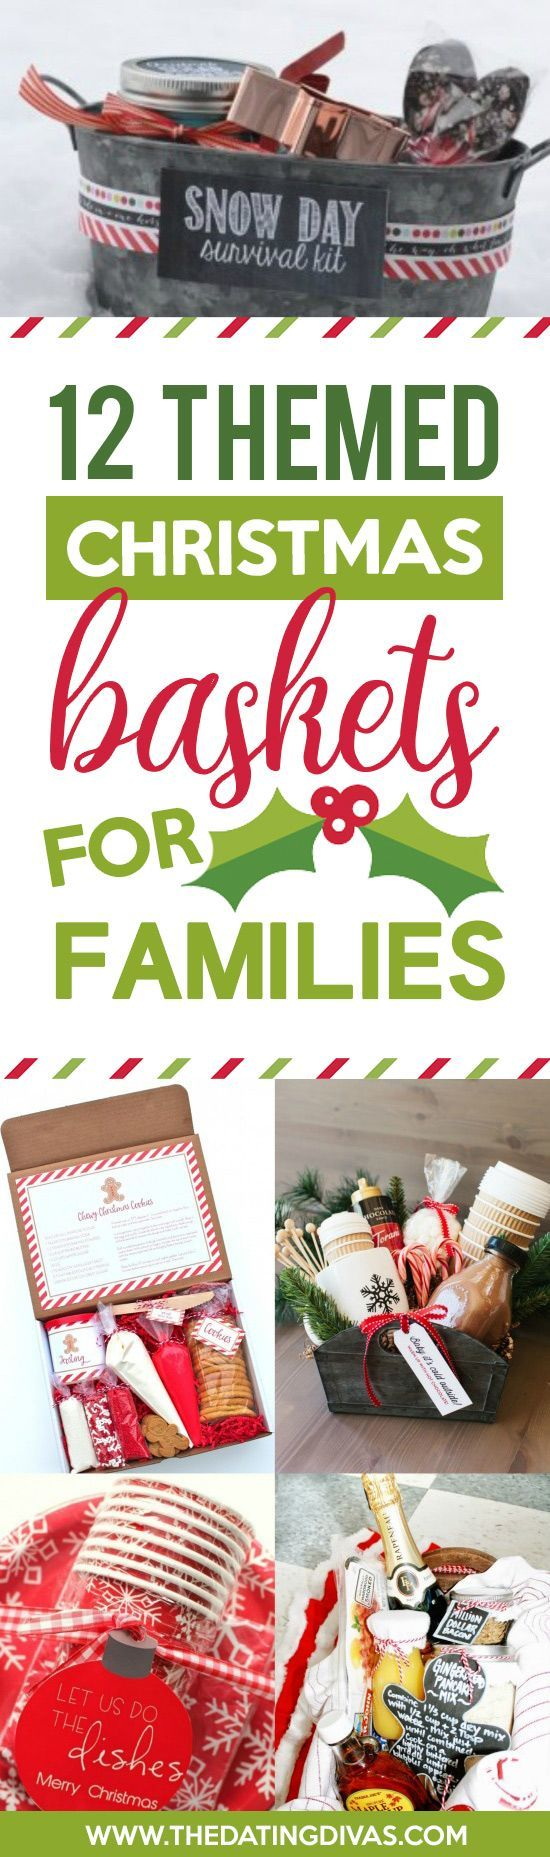 25+ unique Family gifts ideas on Pinterest | 30 DIY Christmas ...